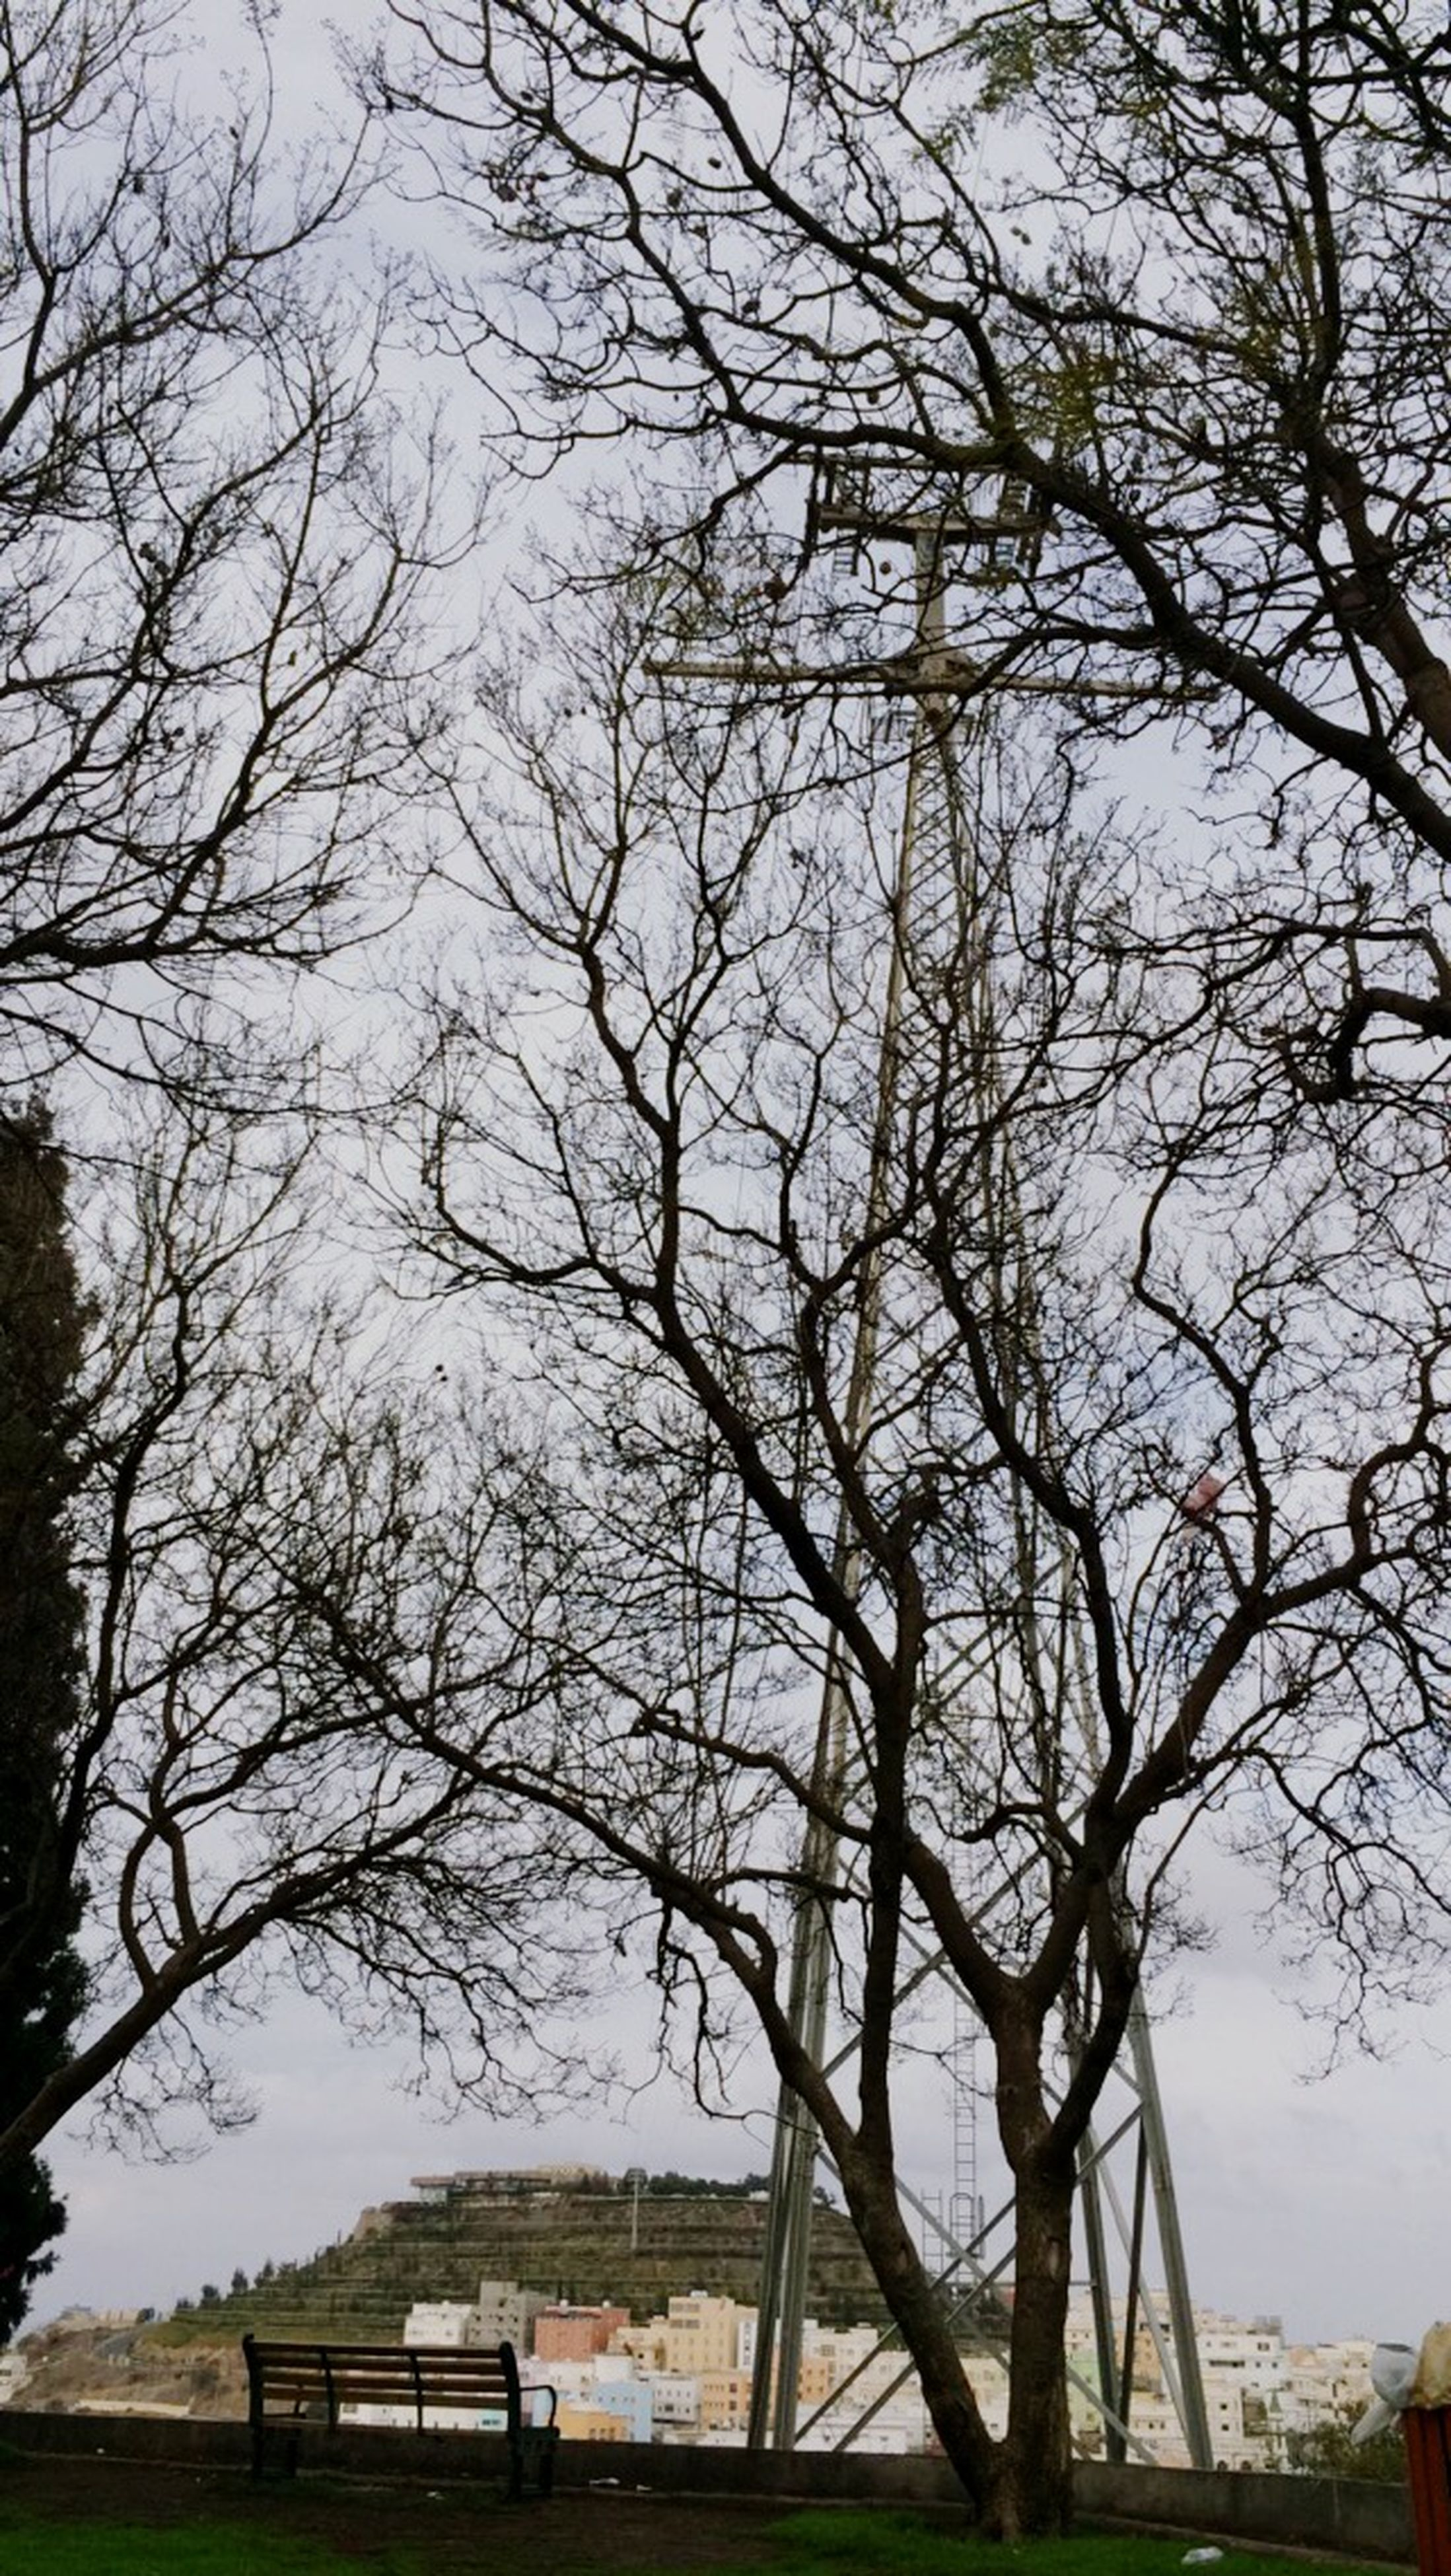 tree, bare tree, branch, sky, built structure, nature, grass, bench, tranquility, tree trunk, park - man made space, field, building exterior, architecture, tranquil scene, growth, day, outdoors, beauty in nature, scenics